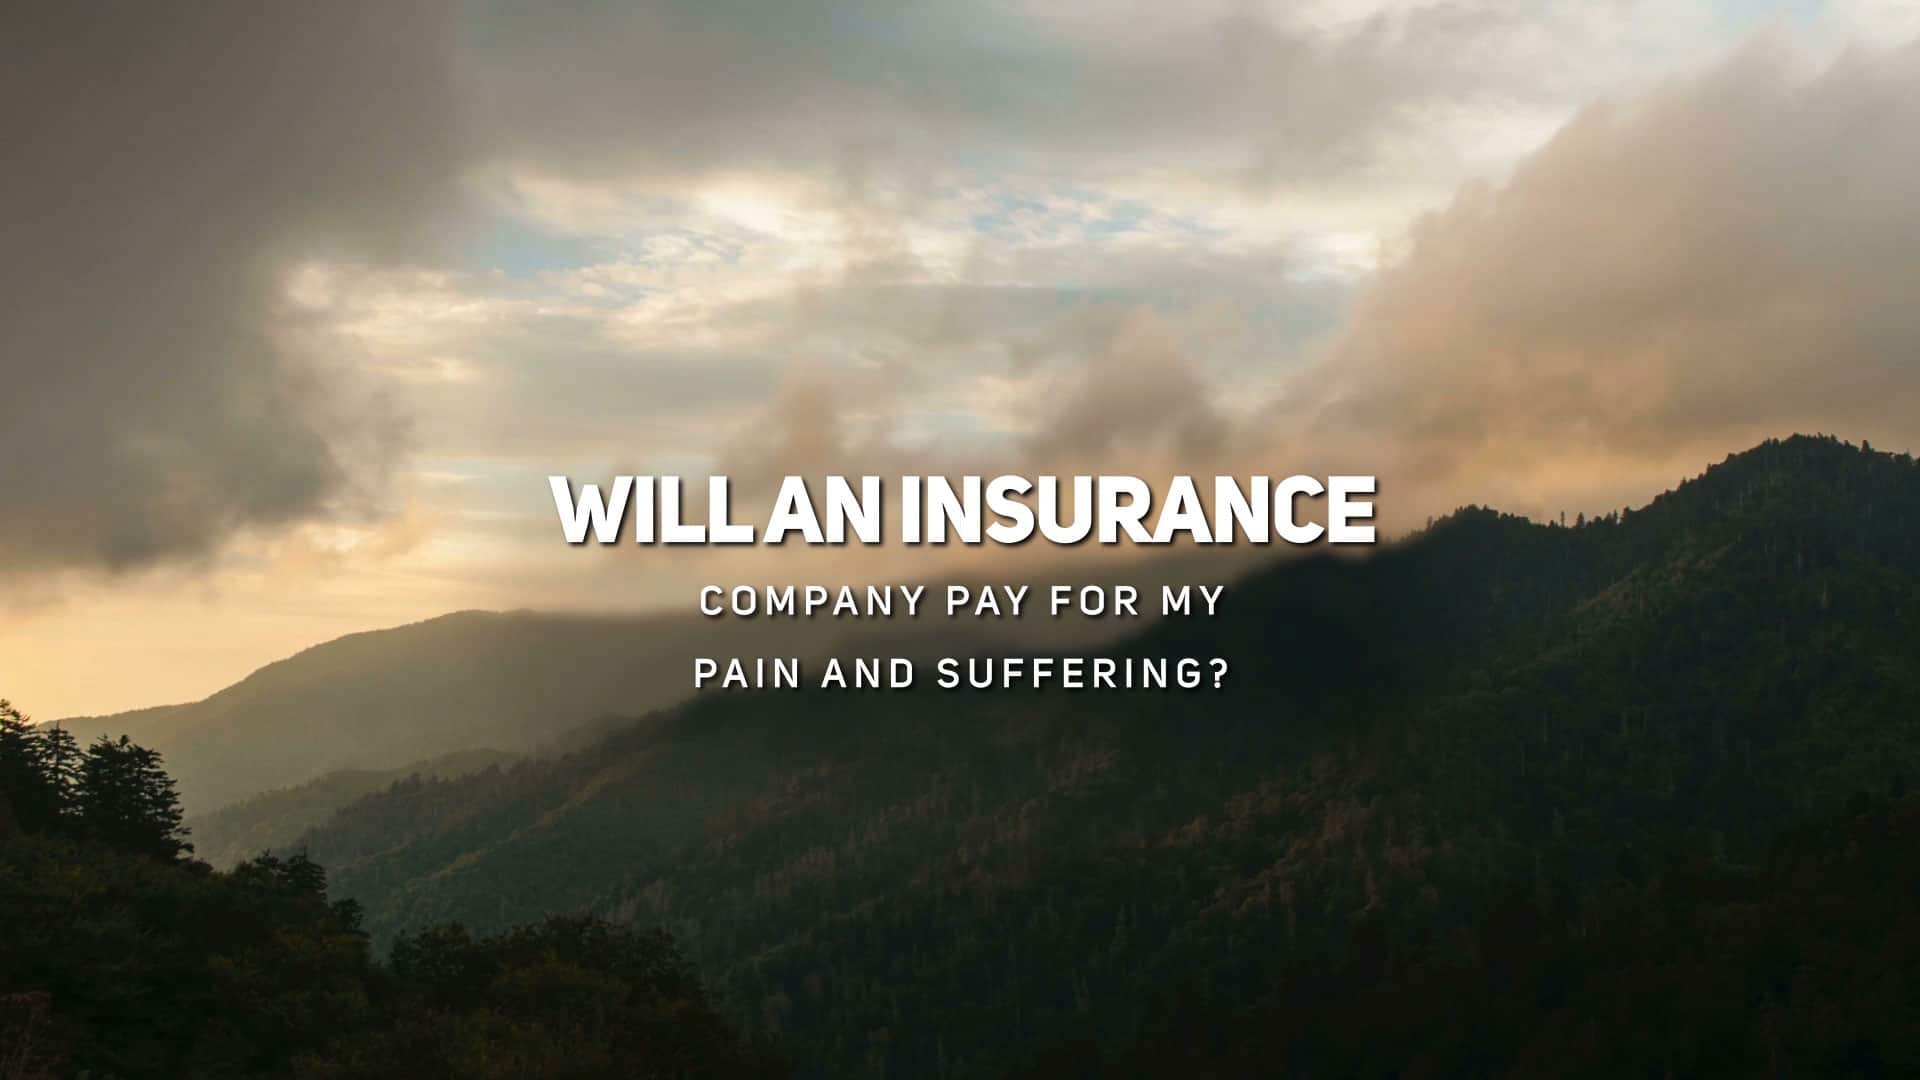 Will An Insurance Company Pay for My Pain and Suffering